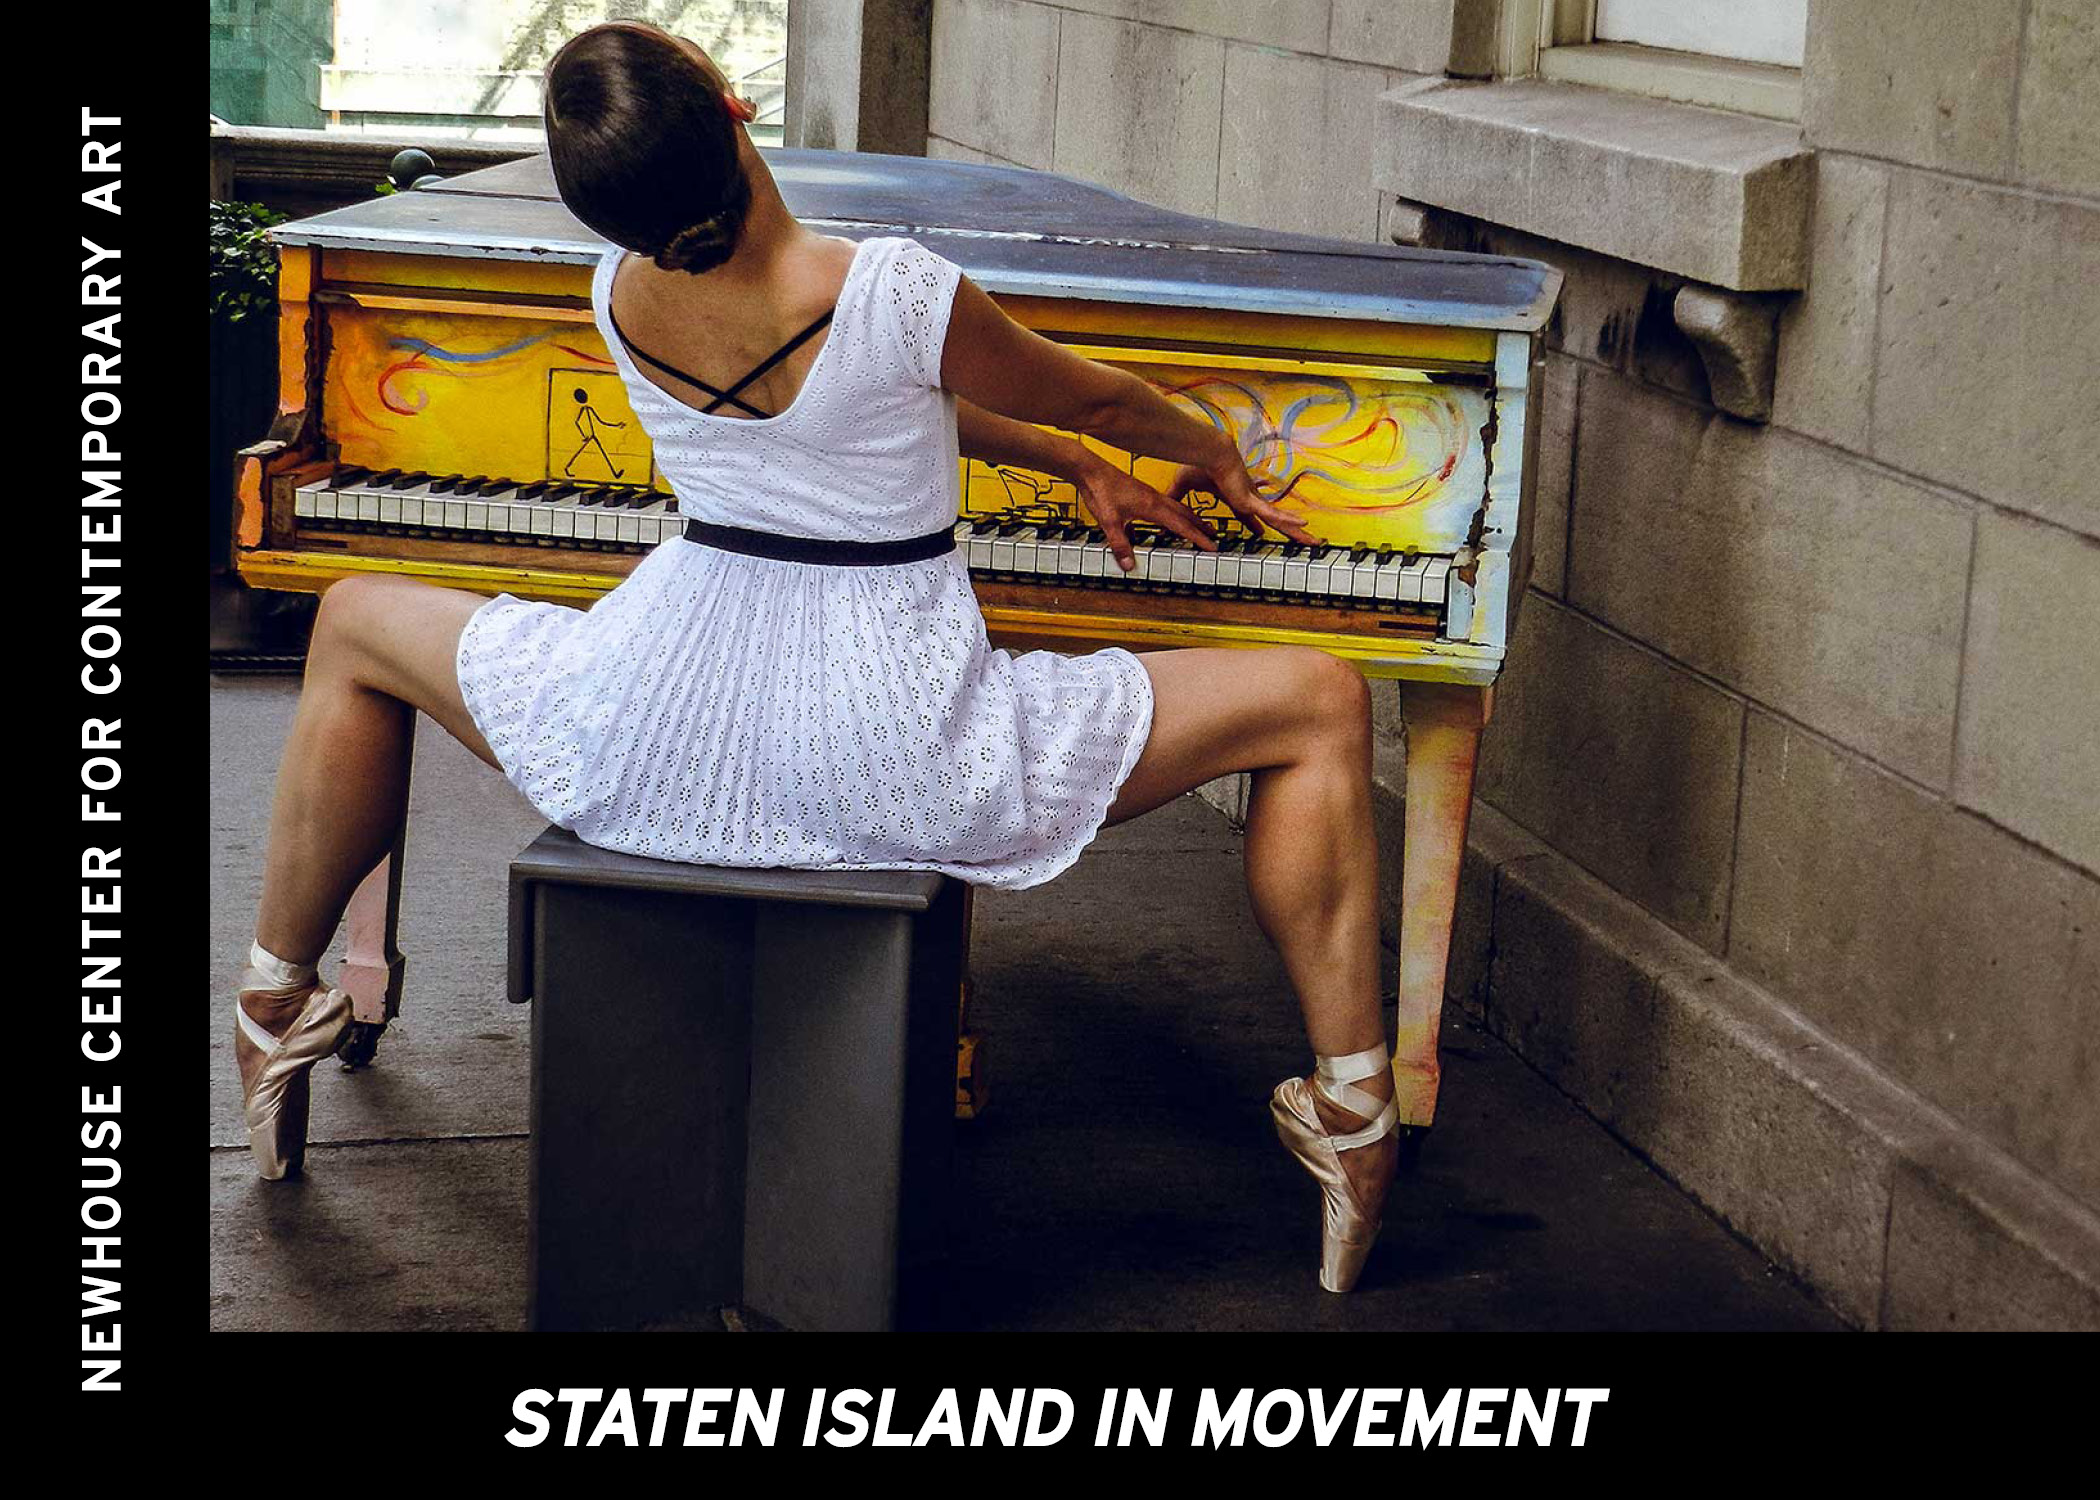 Staten Island in Movement @ Newhouse Center for Contemporary Art